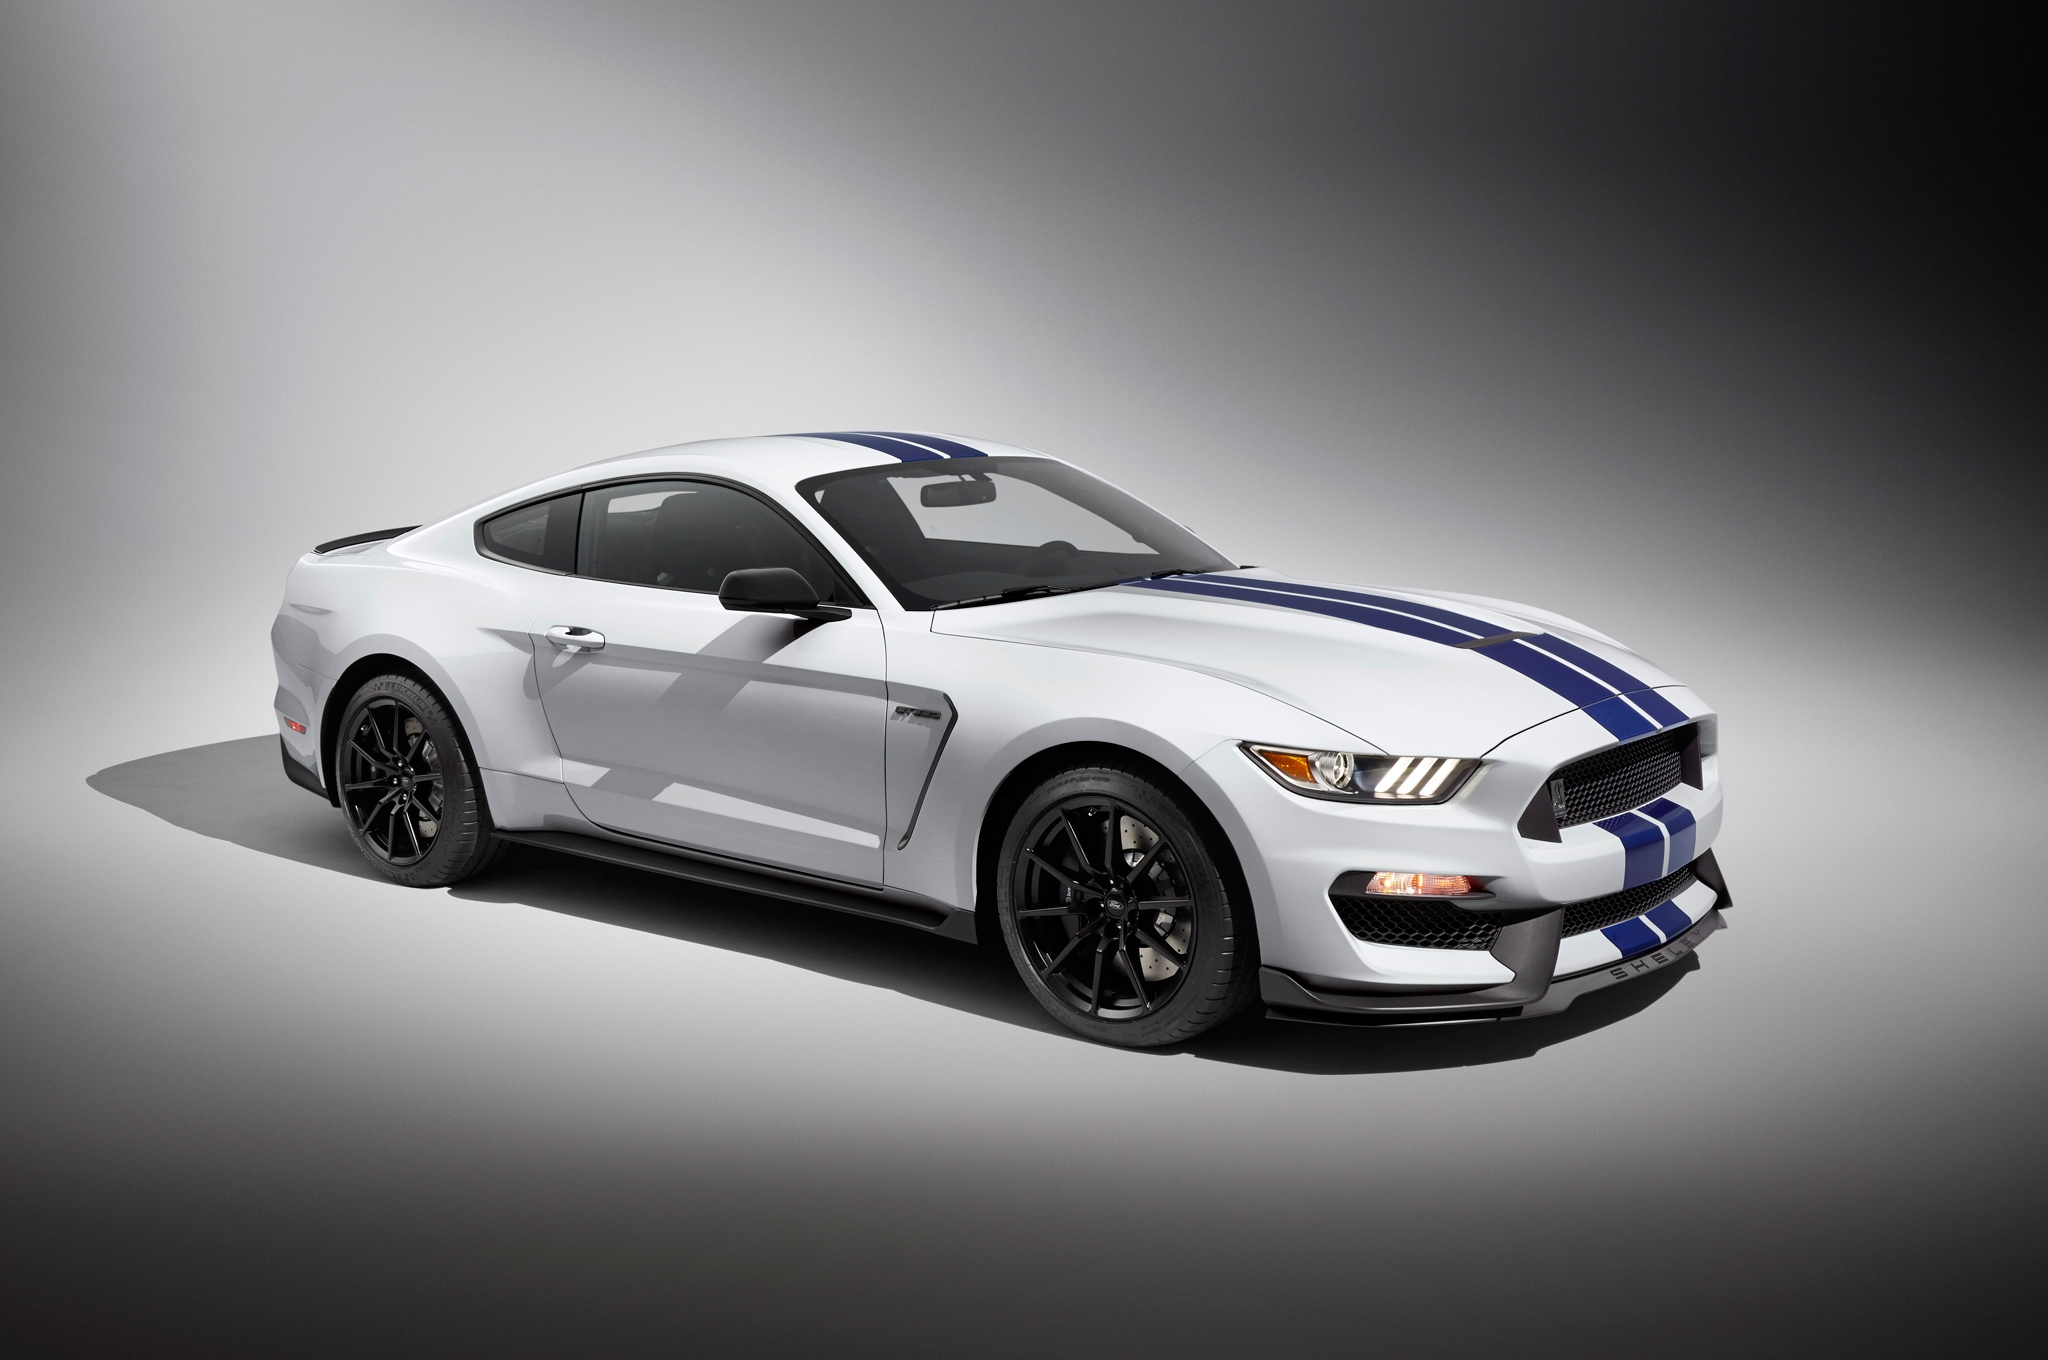 shelby mustang wallpaper - photo #28